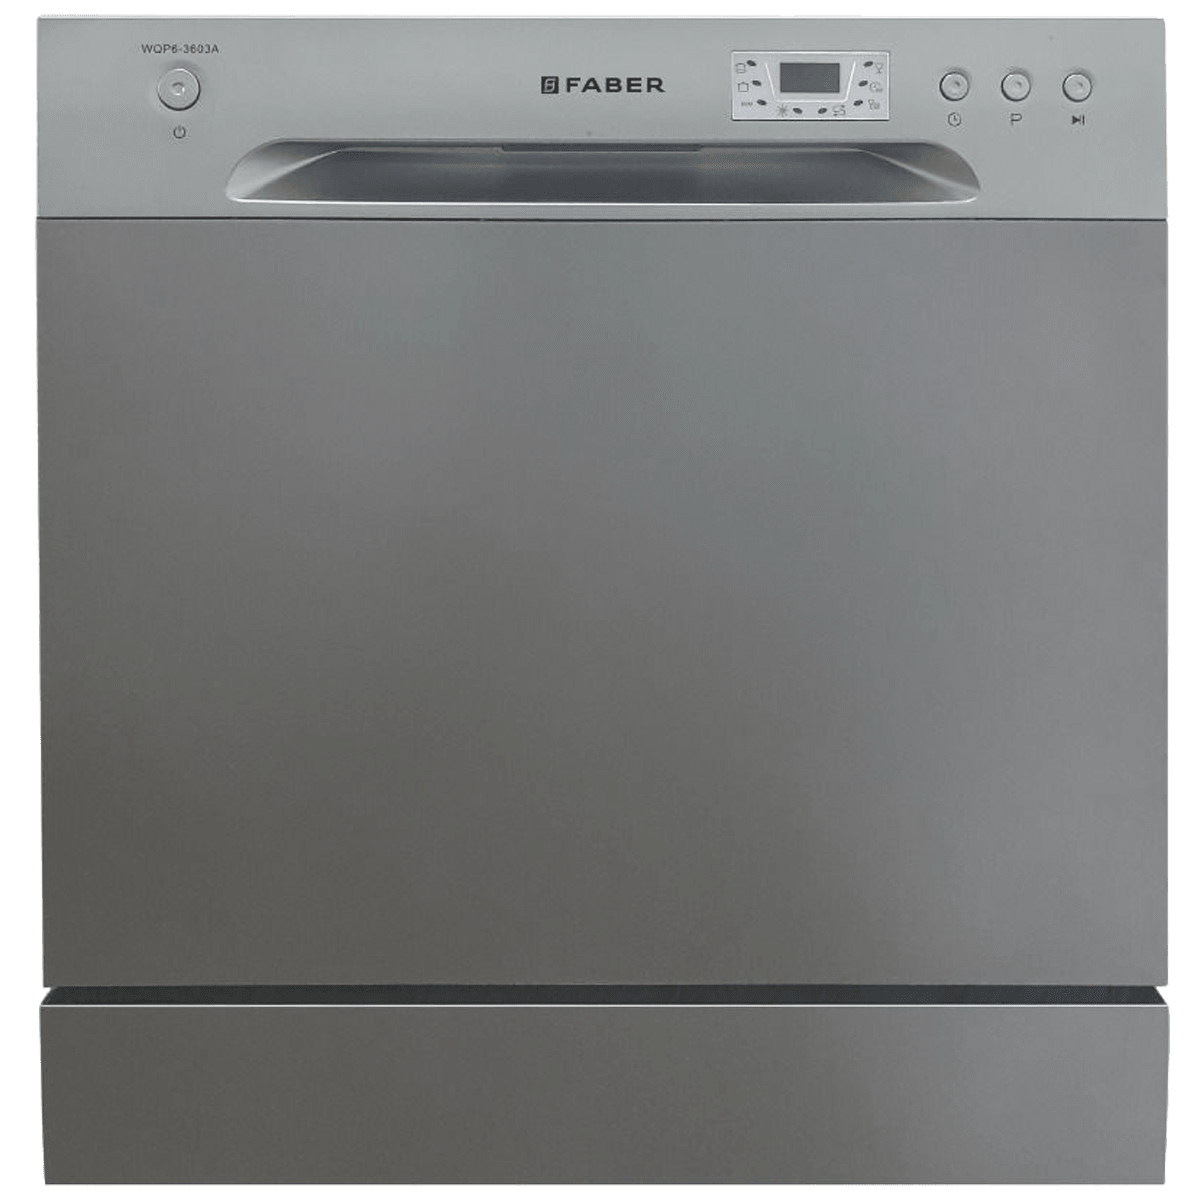 Faber 8 Place Setting Counter Top Dishwasher (Self Clean Filter System, FFSD 6PR 8S Ace, Inox)